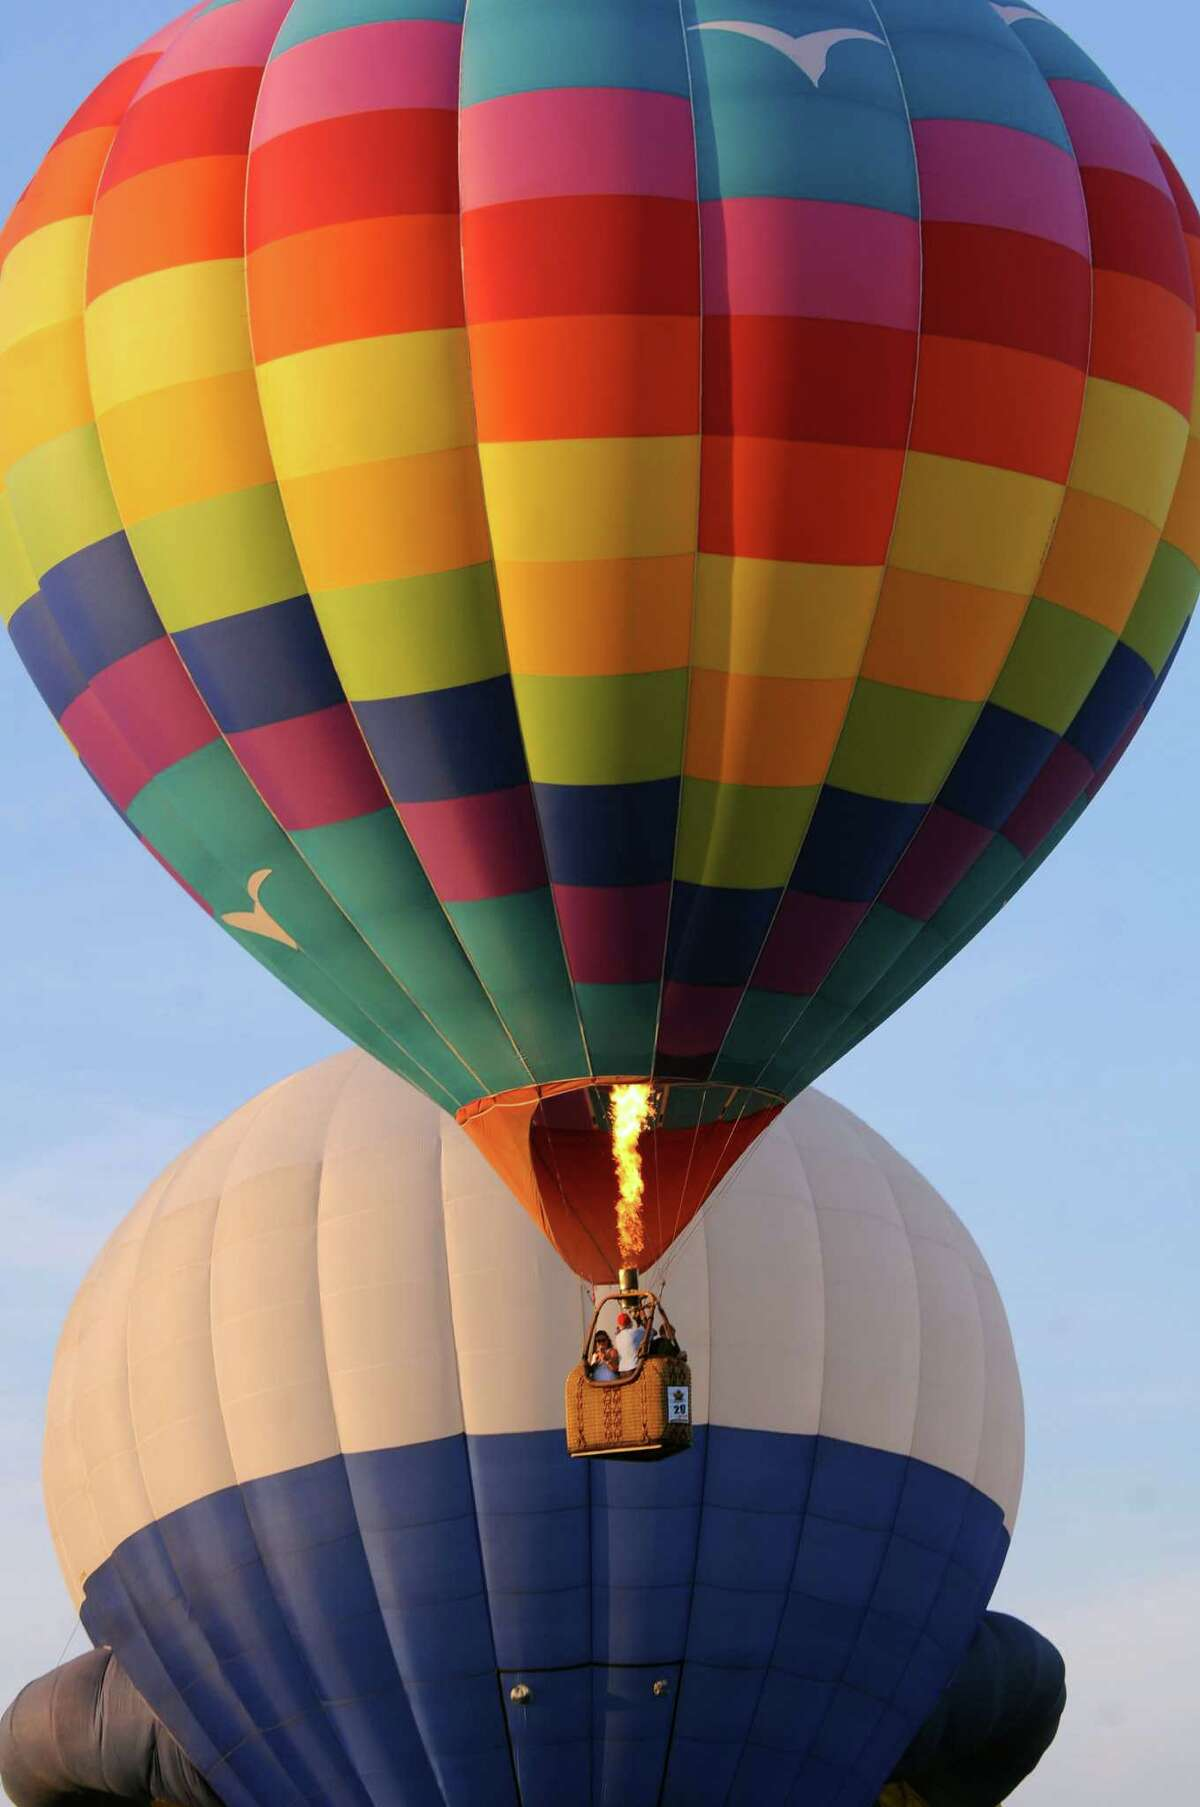 Hot air balloons lift off during the Adirondack Balloon Festival on Friday, Sept. 18, 2015, at Floyd Bennett Memorial Airport in Queensbury, N.Y. (Cindy Schultz / Times Union)